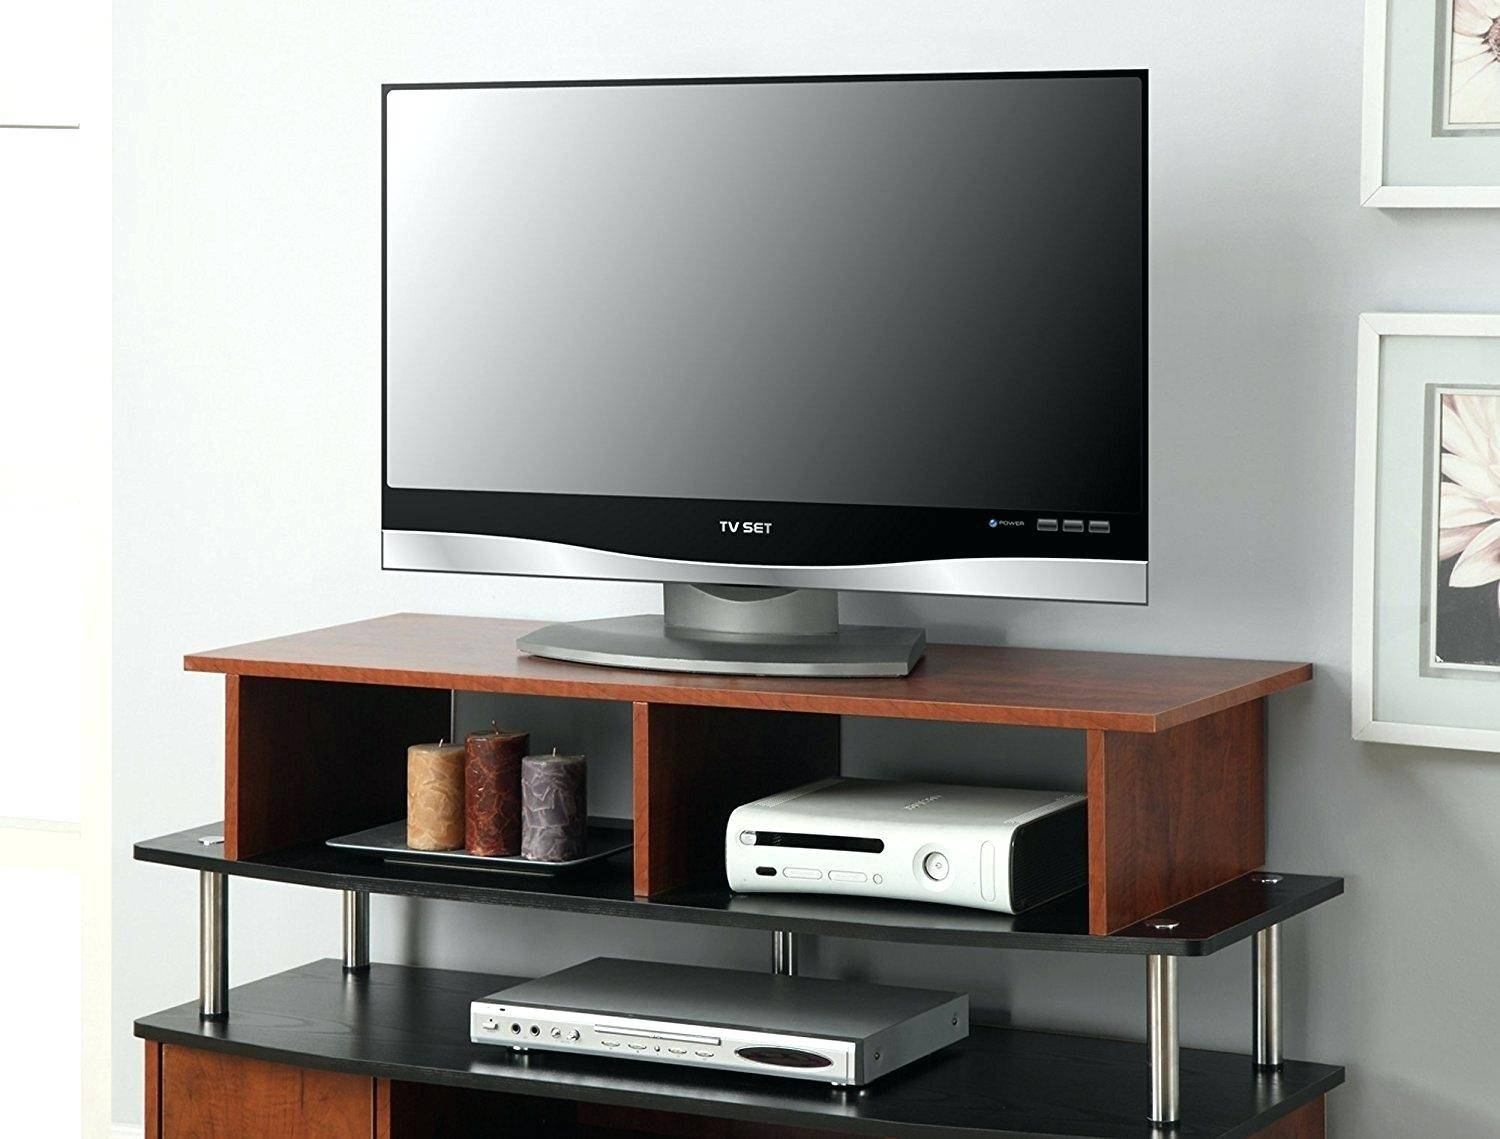 Tv Stand : Fitueyes 167 Inch White 2 Tiers Monitor Stand Computer in Tv Riser Stand (Image 14 of 15)